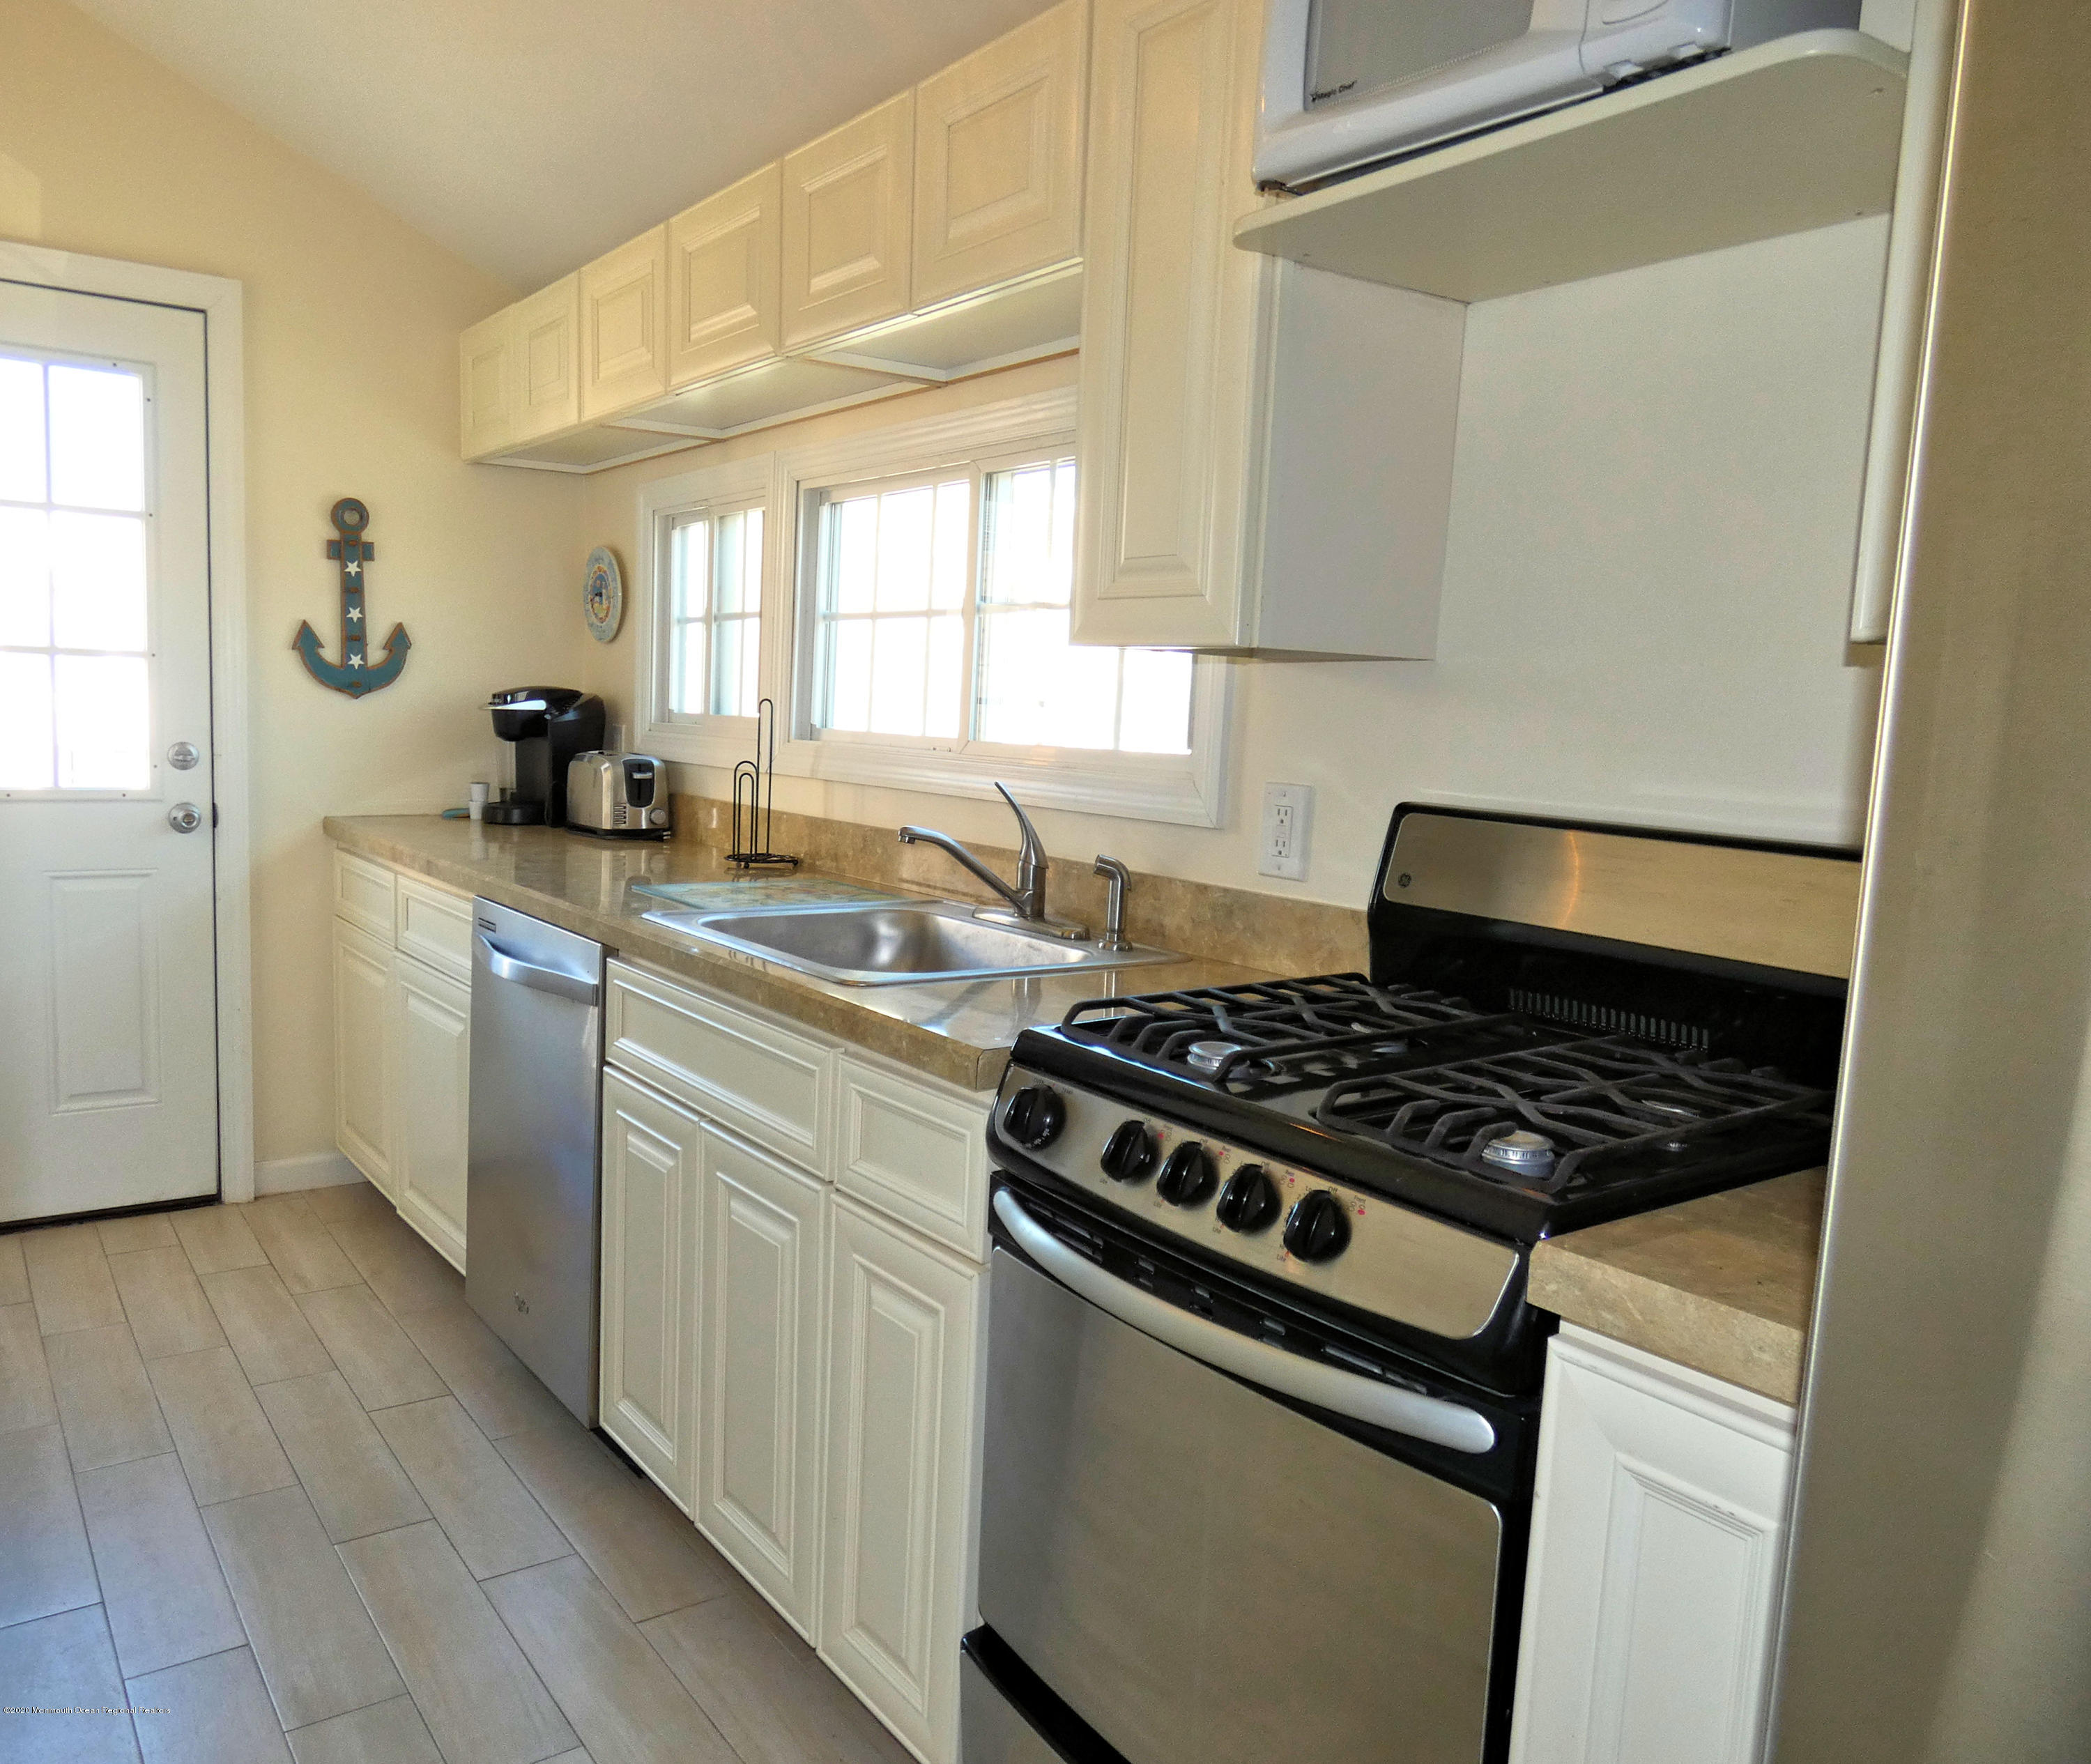 110 W Dolphin Way - Picture 7